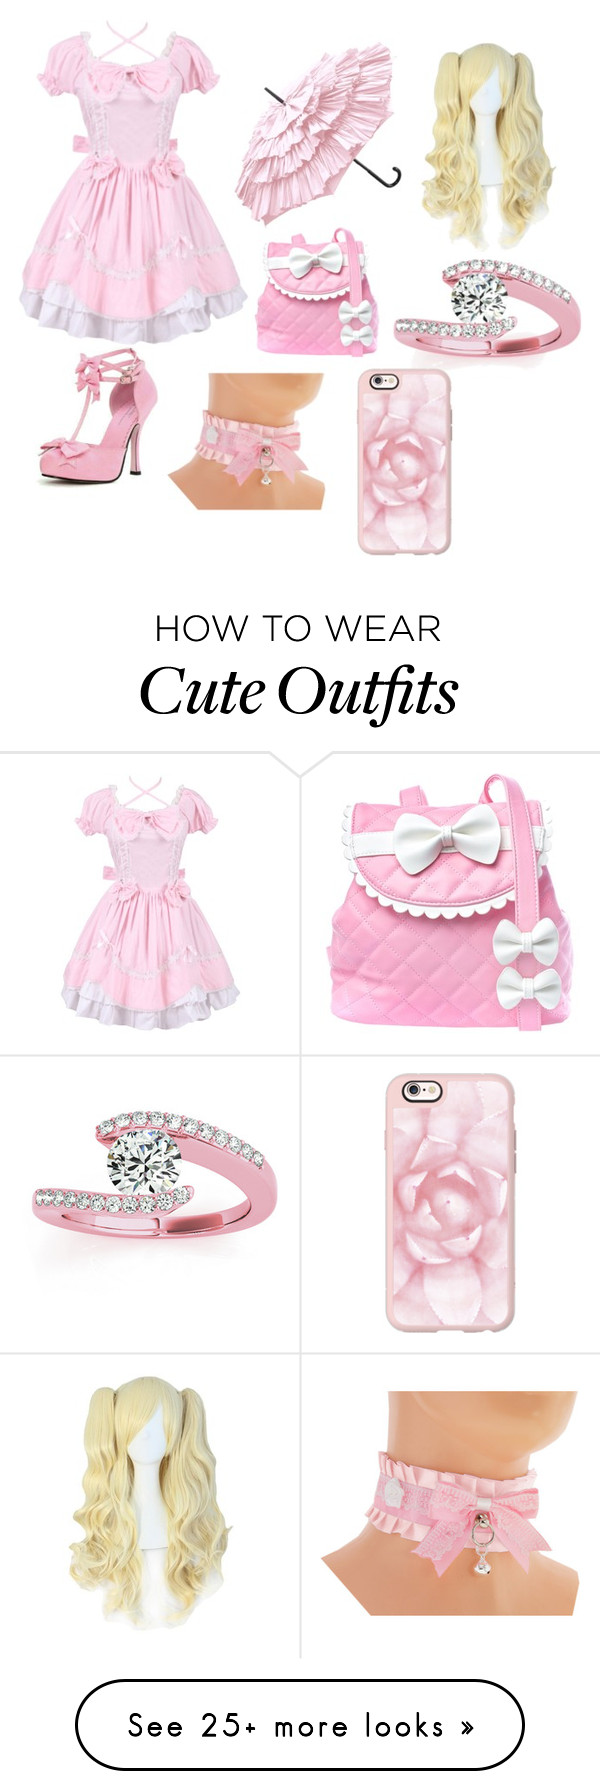 """Random outfit"" by cleo-chan on Polyvore featuring cutekawaii, Sugarbaby, Allurez and Casetify"